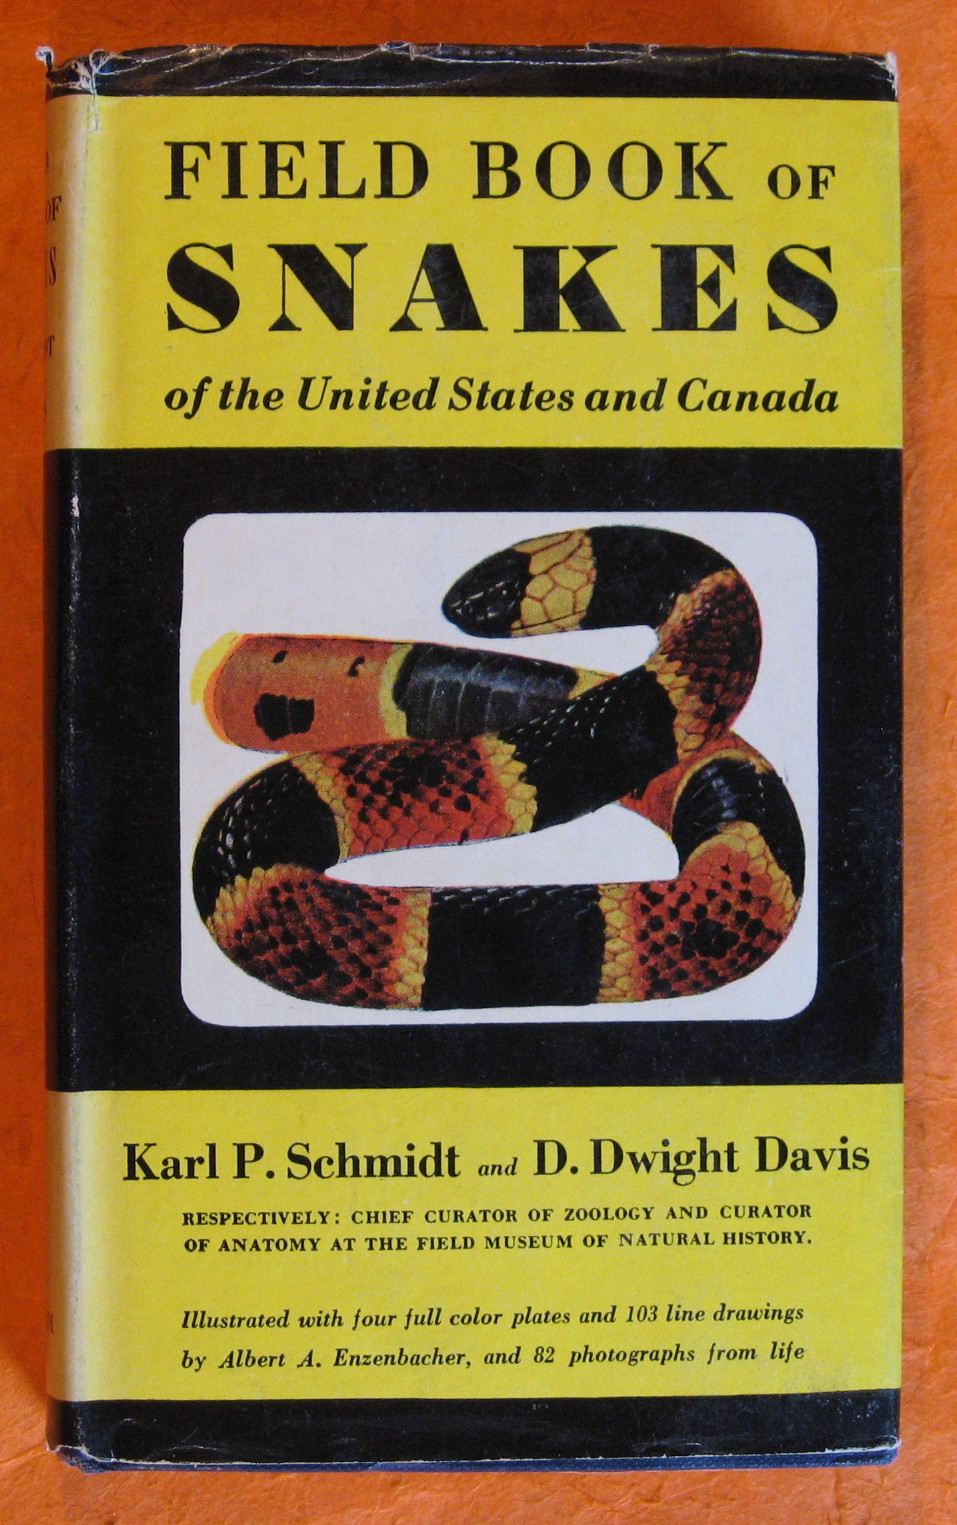 Field Book of Snakes of the United States and Canada